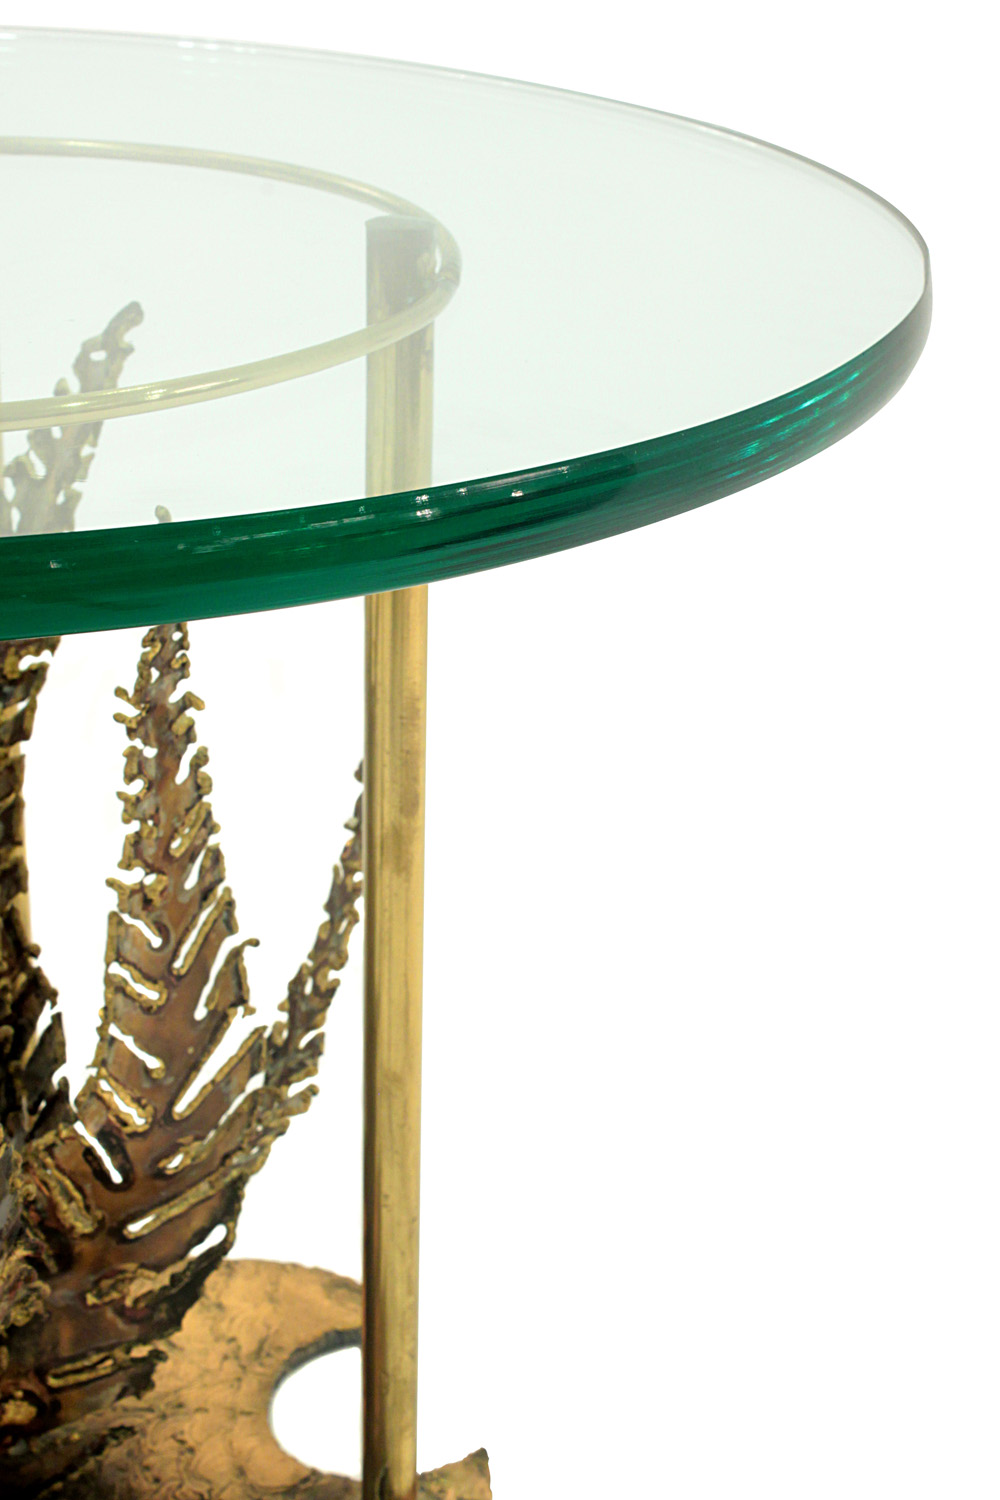 Seandel 45 brass fern under glass endtable132 detail hires.jpg